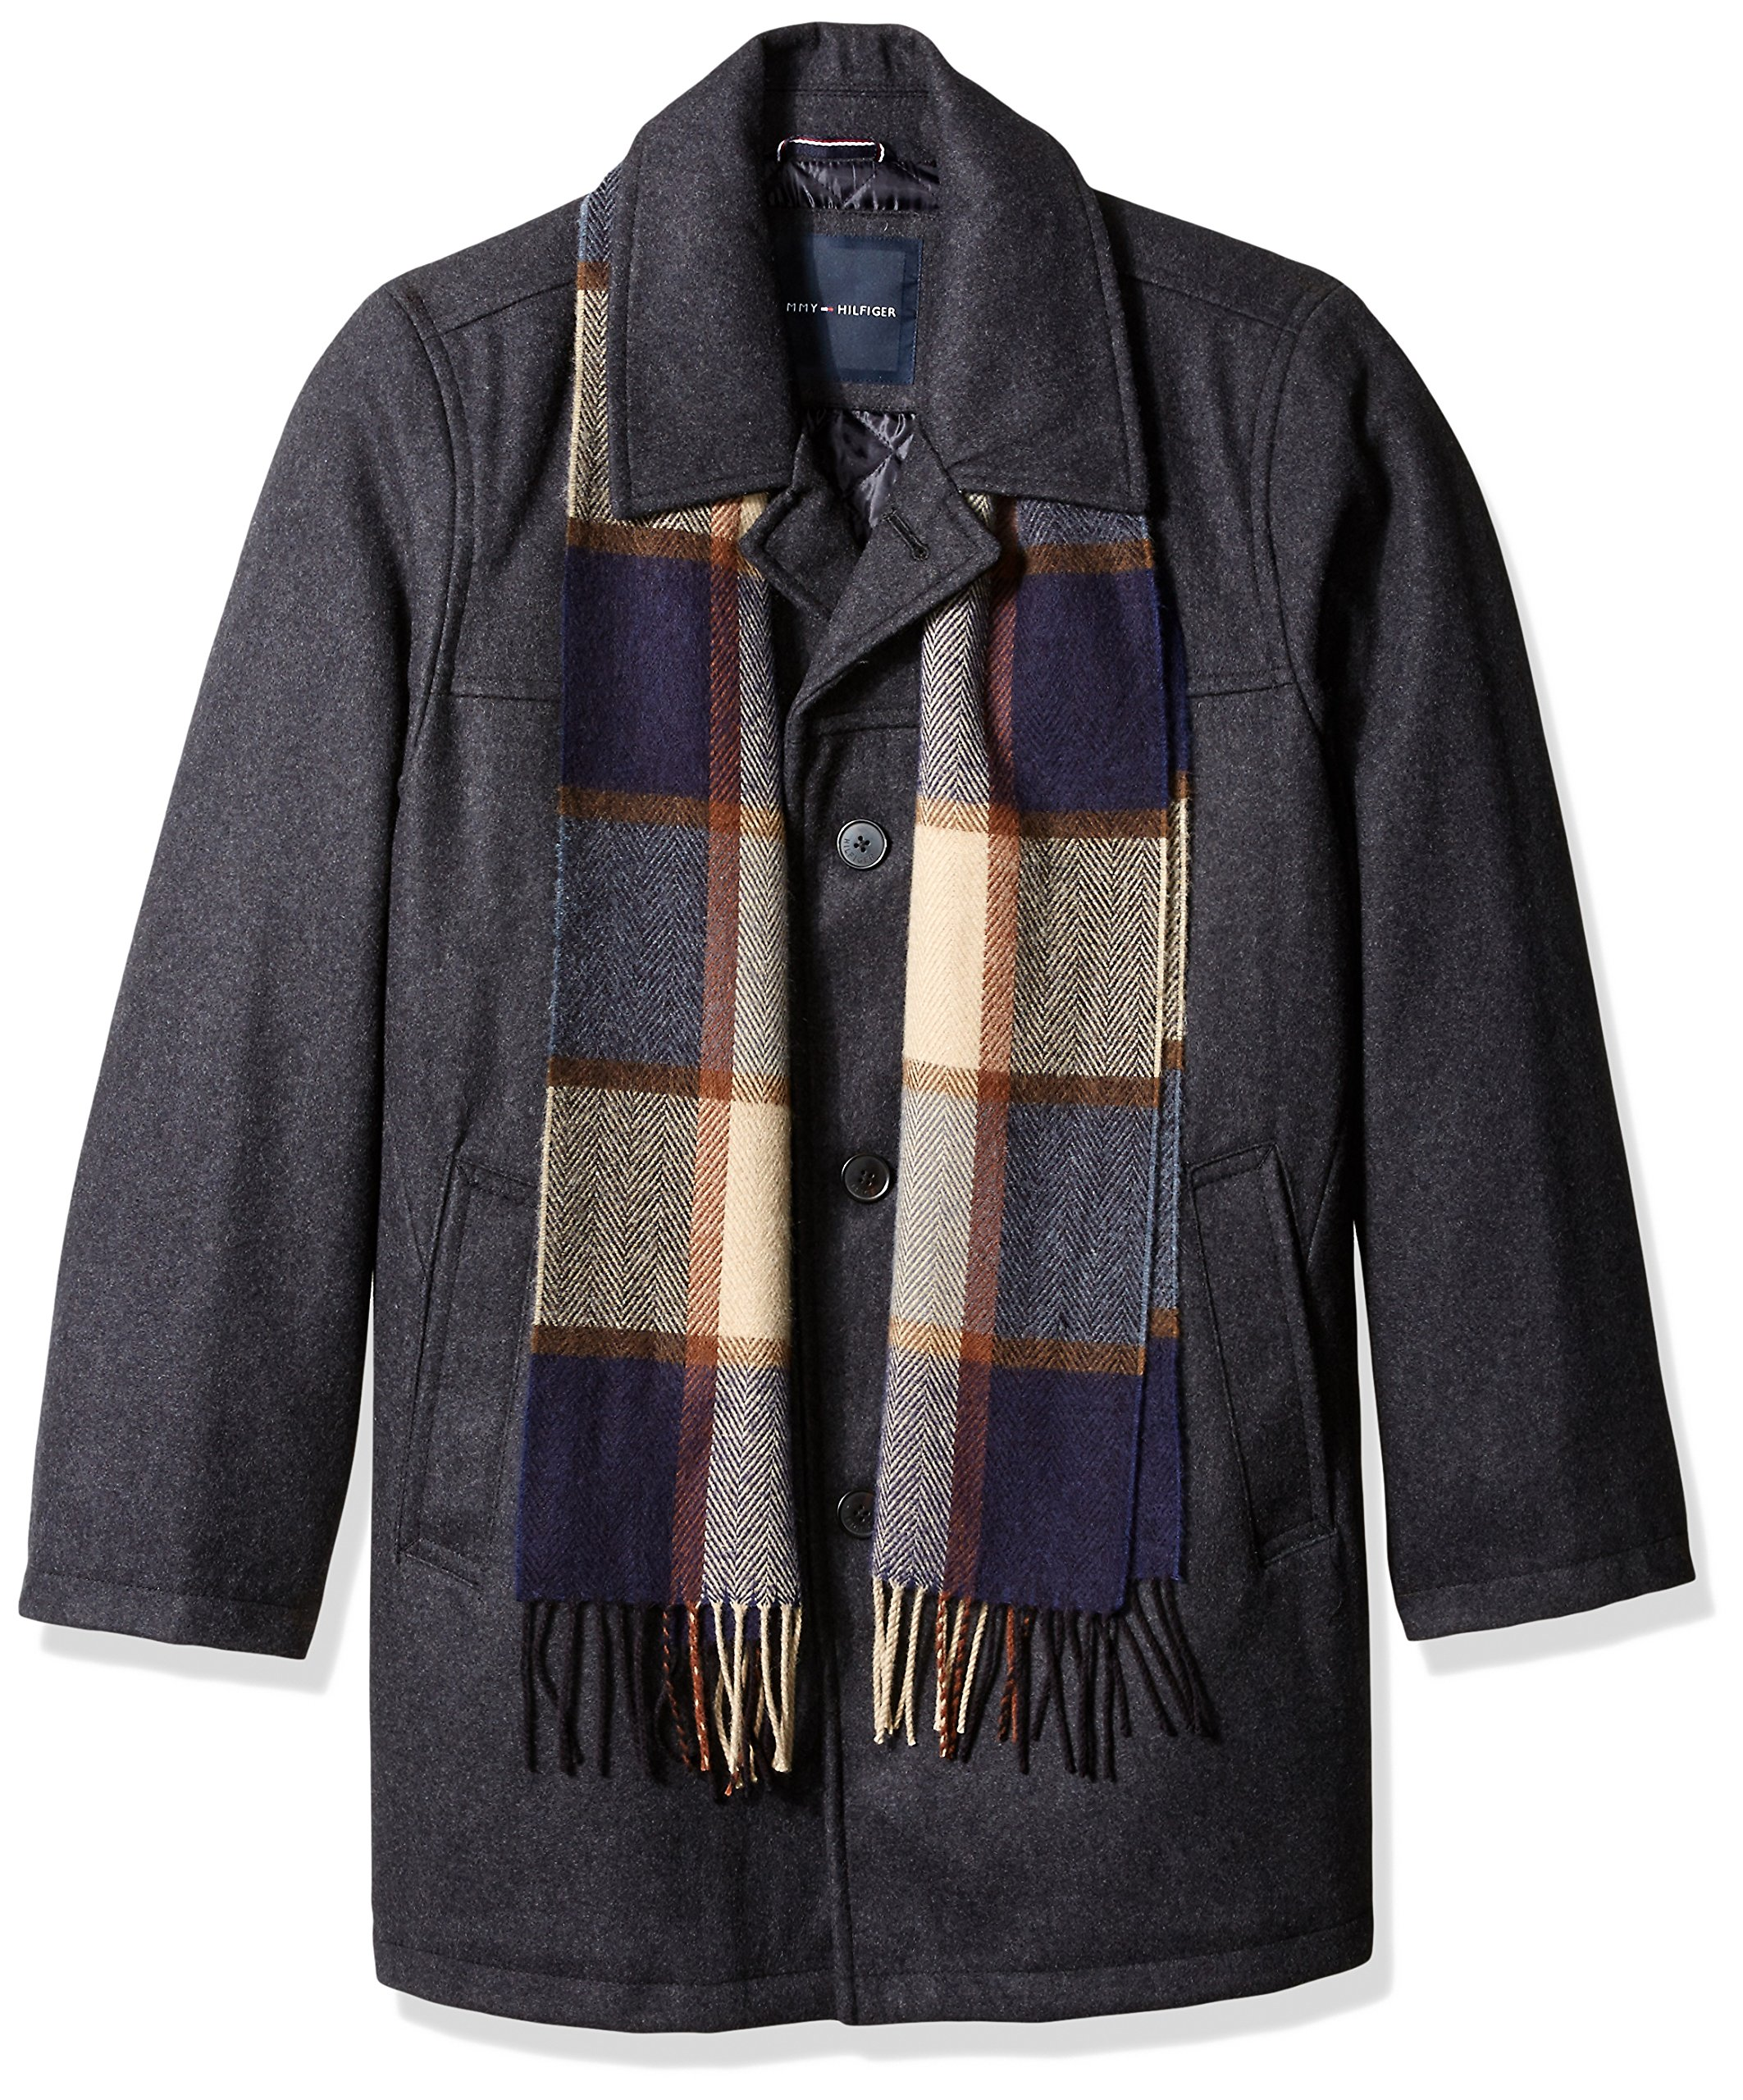 Tommy Hilfiger Men's Big Wool Melton Walking Coat with Detachable Scarf, Charcoal, 3X-Large by Tommy Hilfiger